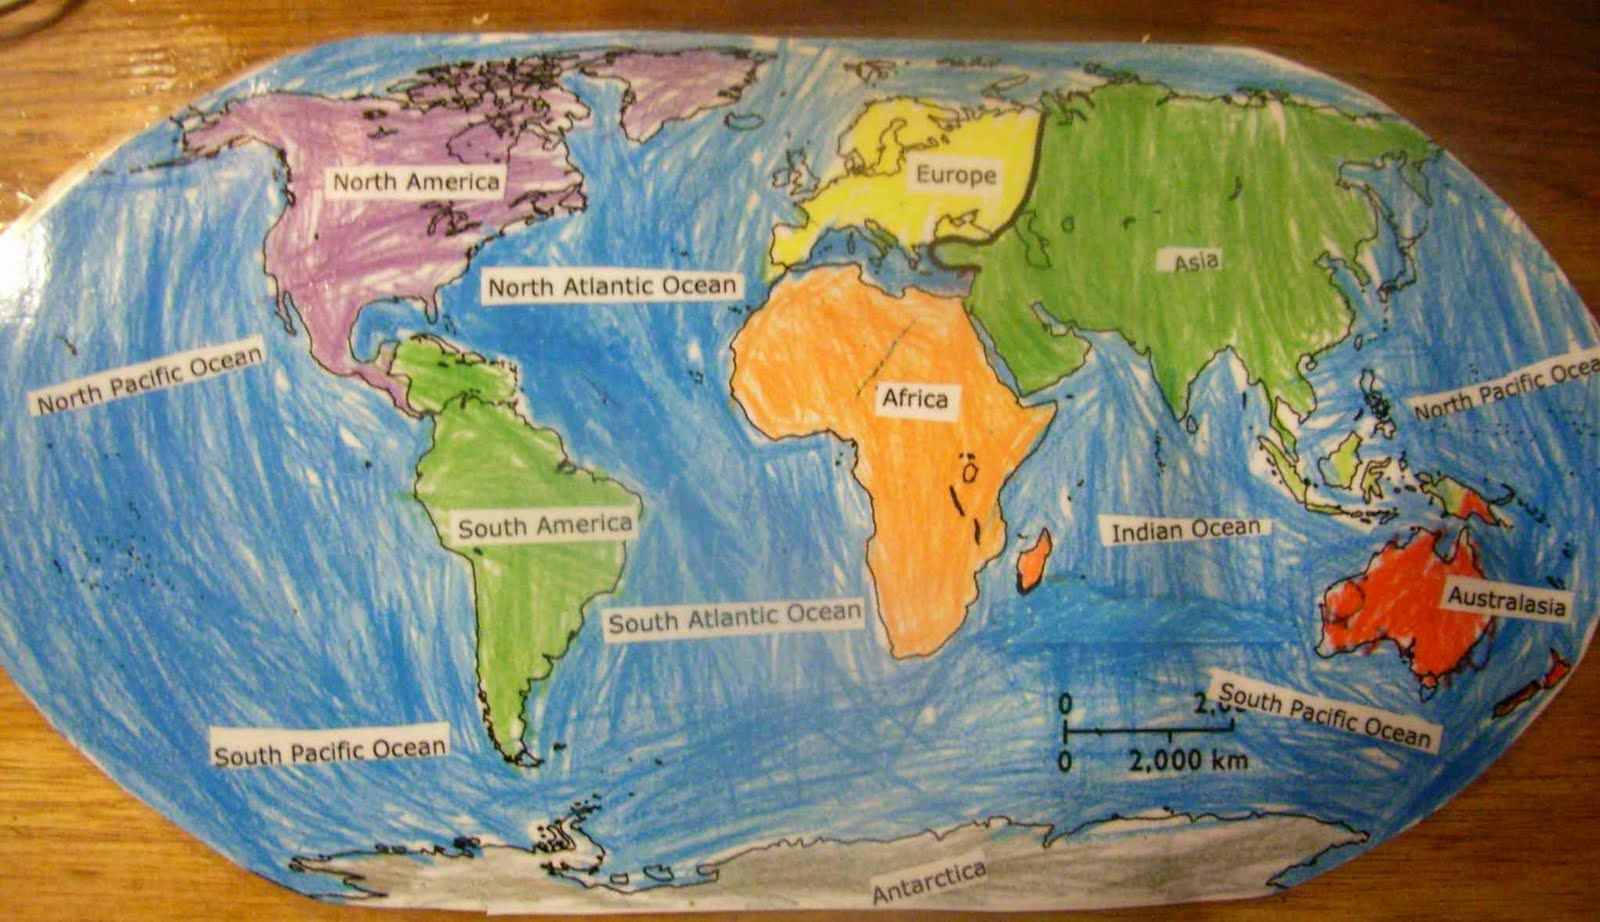 World map continents and oceans jaspers world map showing the world map continents and oceans jaspers world map showing the continents and major oceans gumiabroncs Choice Image